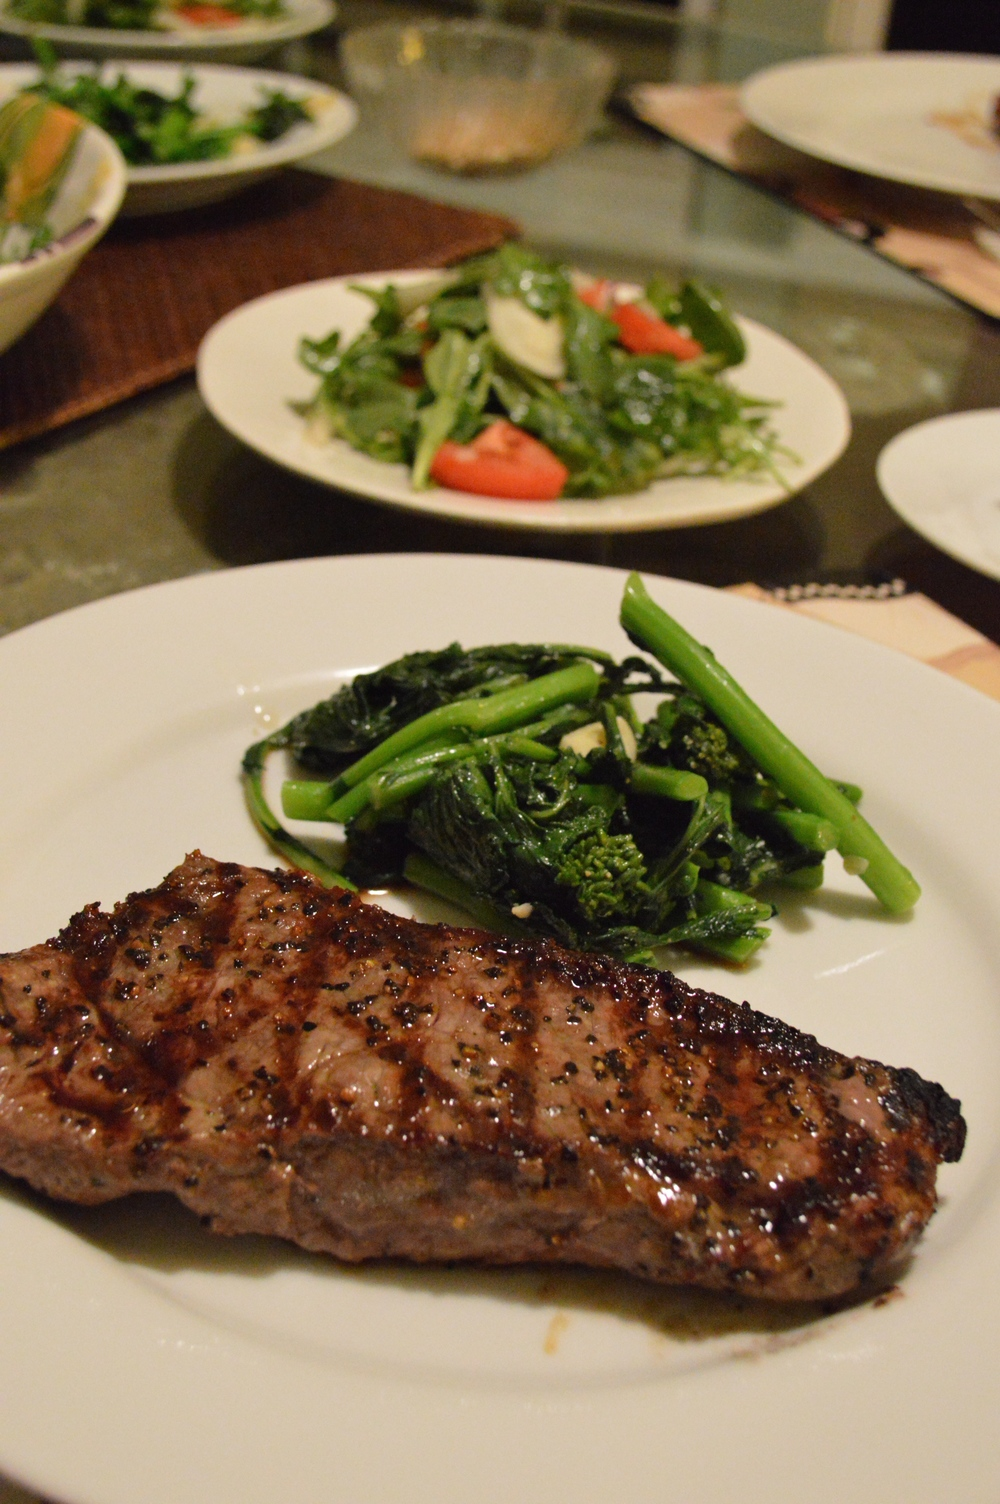 LaurenSchwaiger-Blog-Steak&Salad-Dinner.jpg